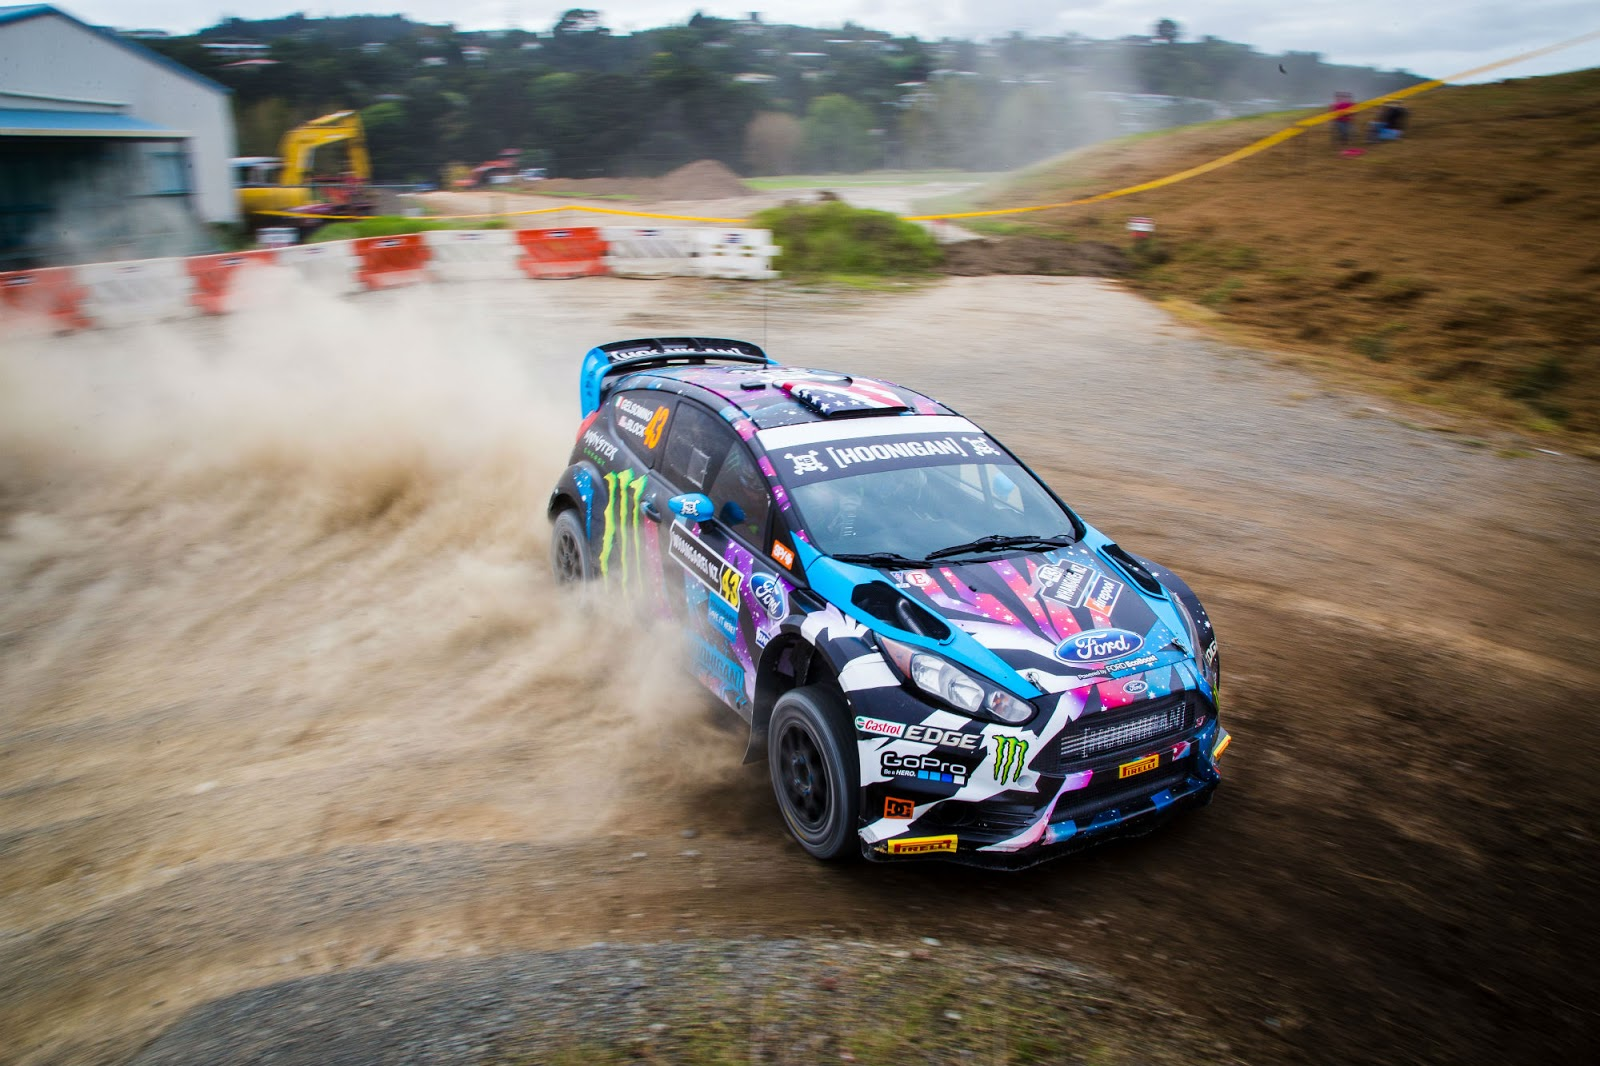 Ken Block S Gymkhana And Rally Spec Ford Fiesta For Sale